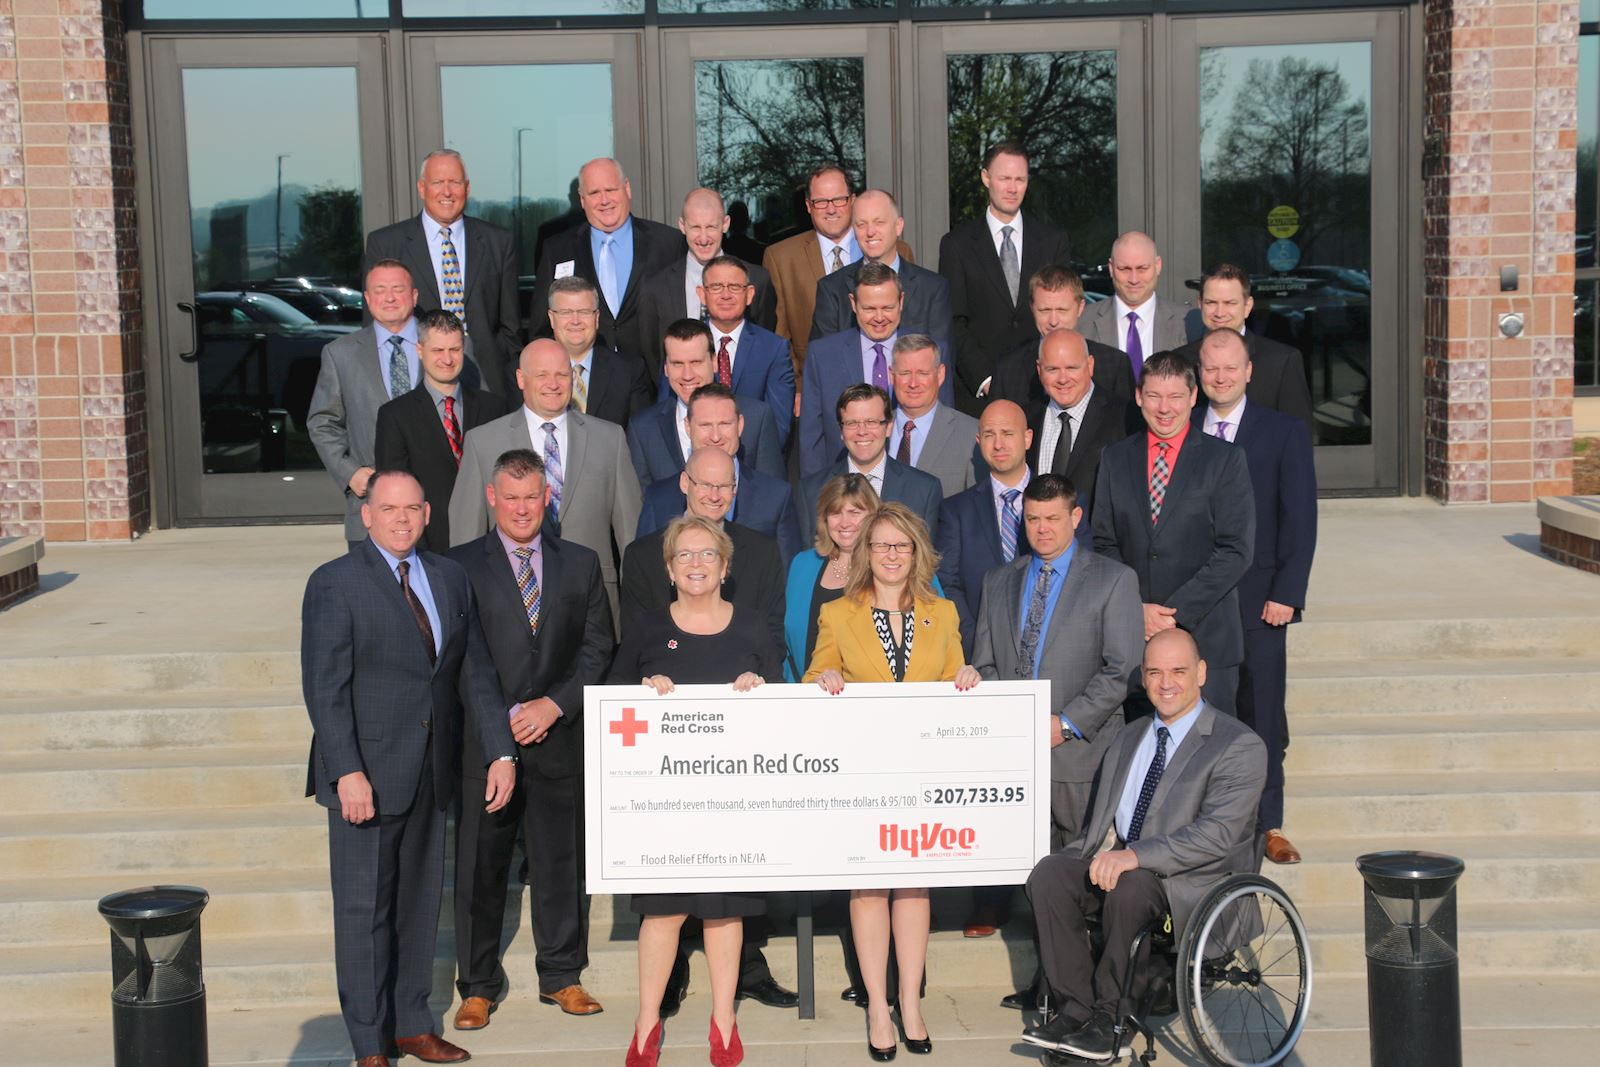 Hy-Vee Raises $207,733 for Flood Relief Efforts in Nebraska and Iowa